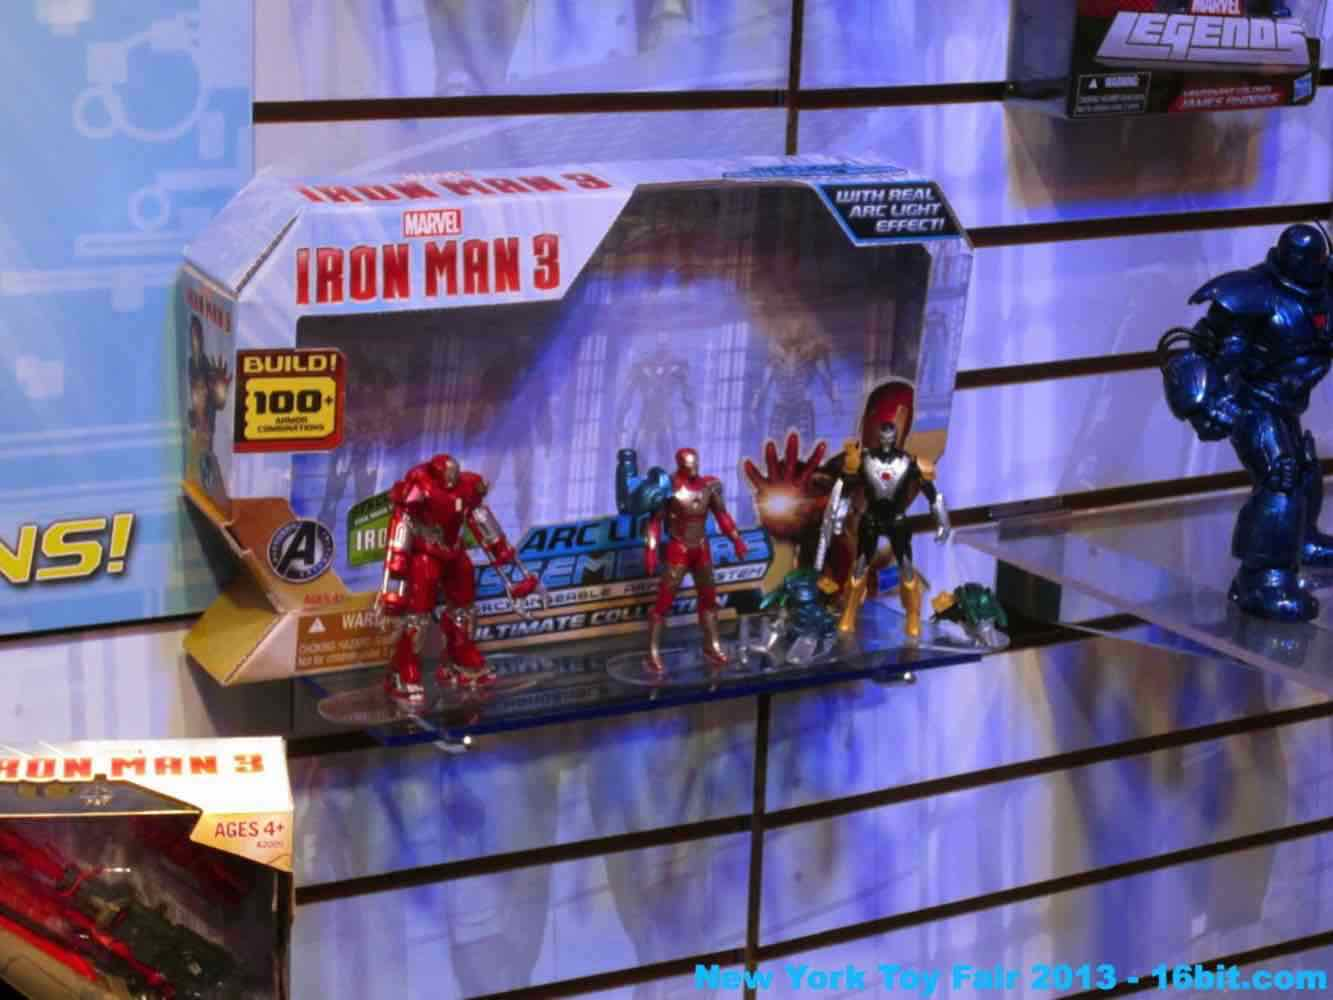 16bit Com Toy Fair Coverage Of Hasbro Iron Man Action